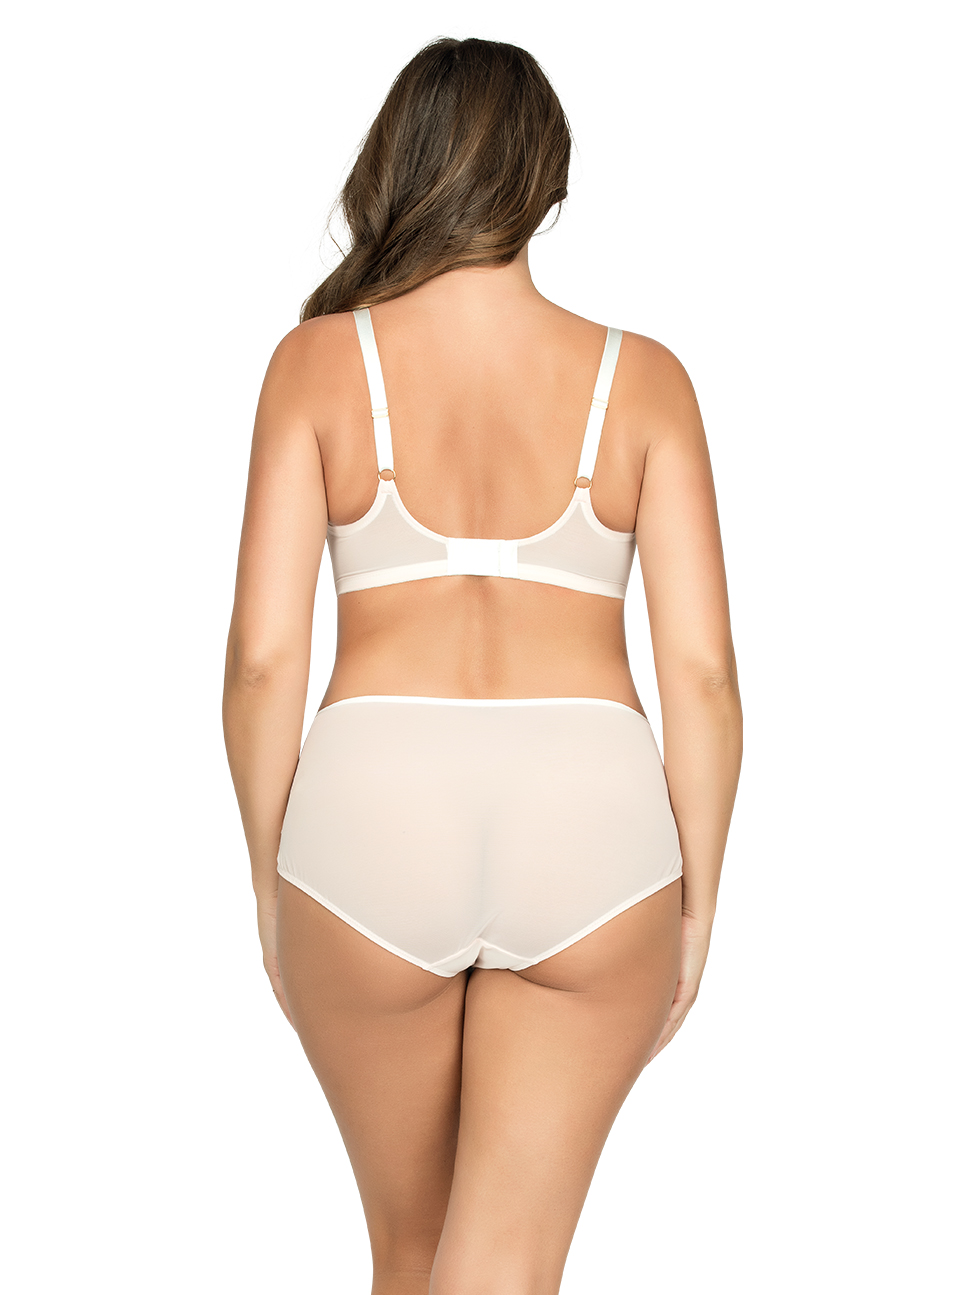 PARFAIT Briana UnlineWireBraP5672 HighwaistedBriefP5675 PetalPinkFloral Back - Briana Highwaisted Brief Petal Pink w Floral P5675